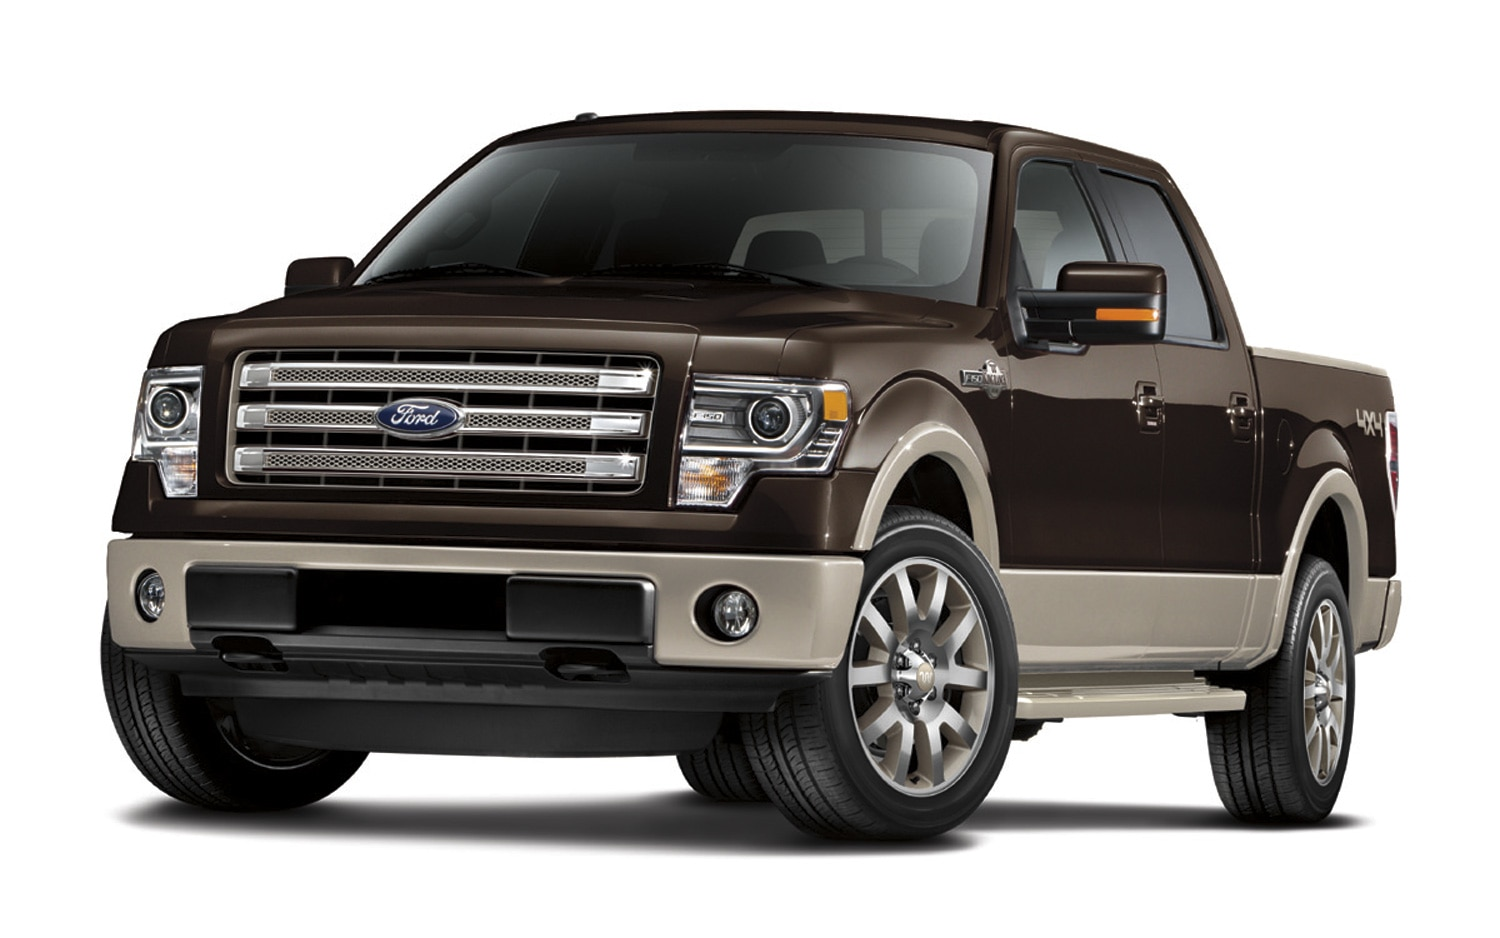 2012 Ford F 150 King Ranch Front Three Quarters View1